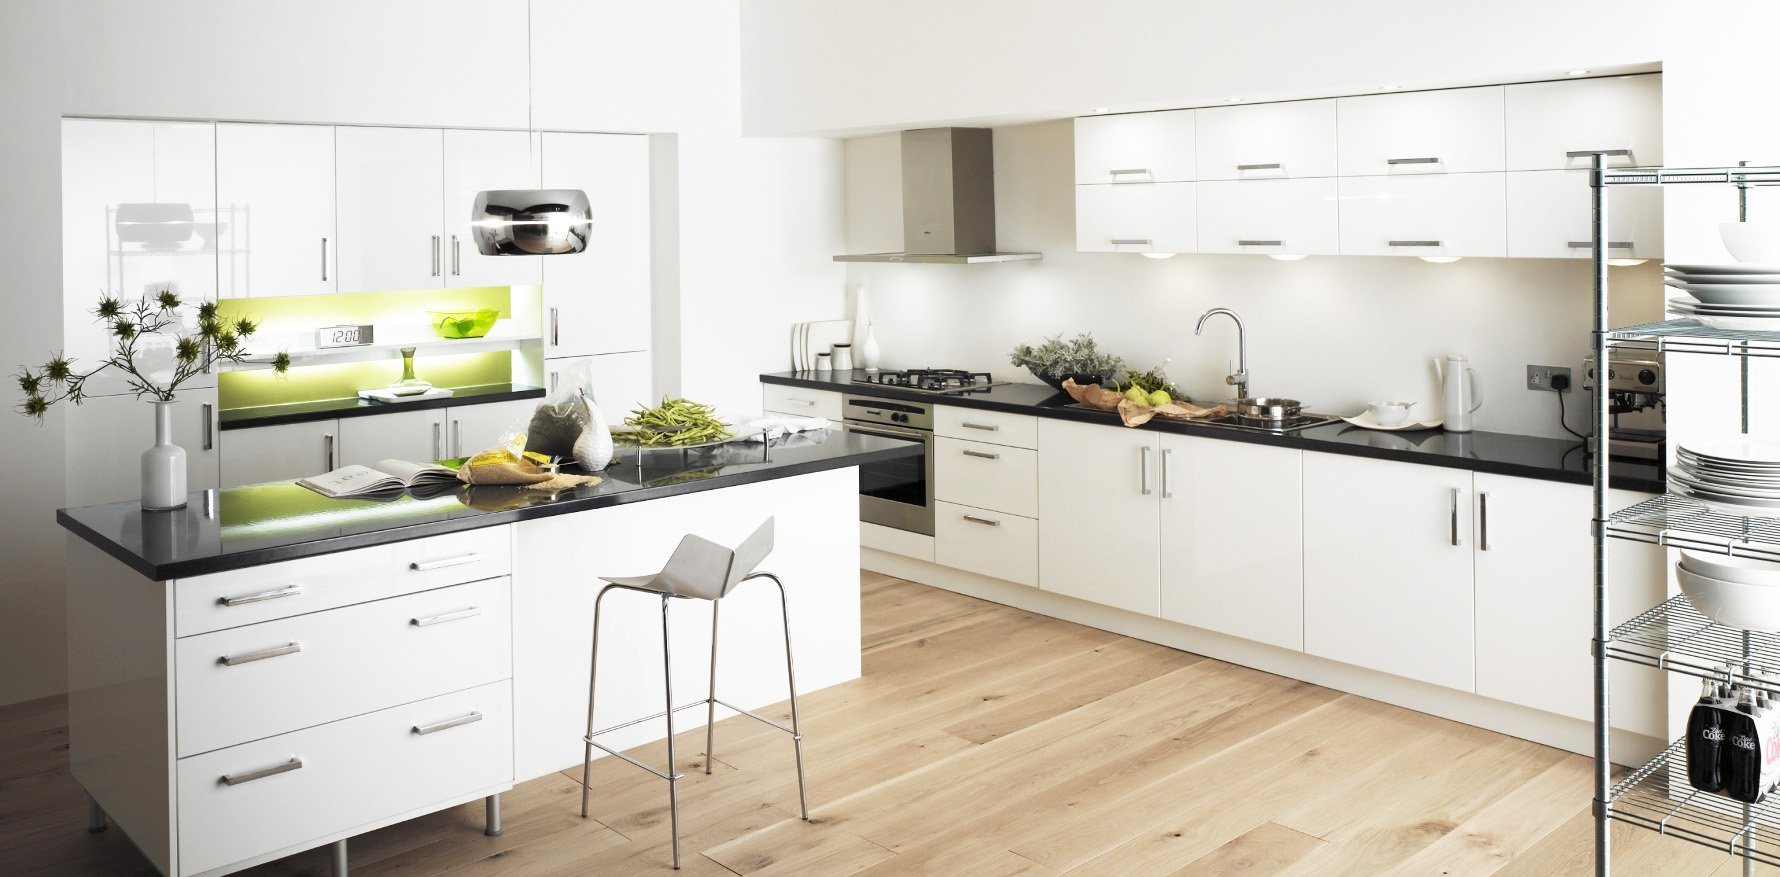 White kitchen cabinet for great looking kitchen decor for Looking for kitchen designs